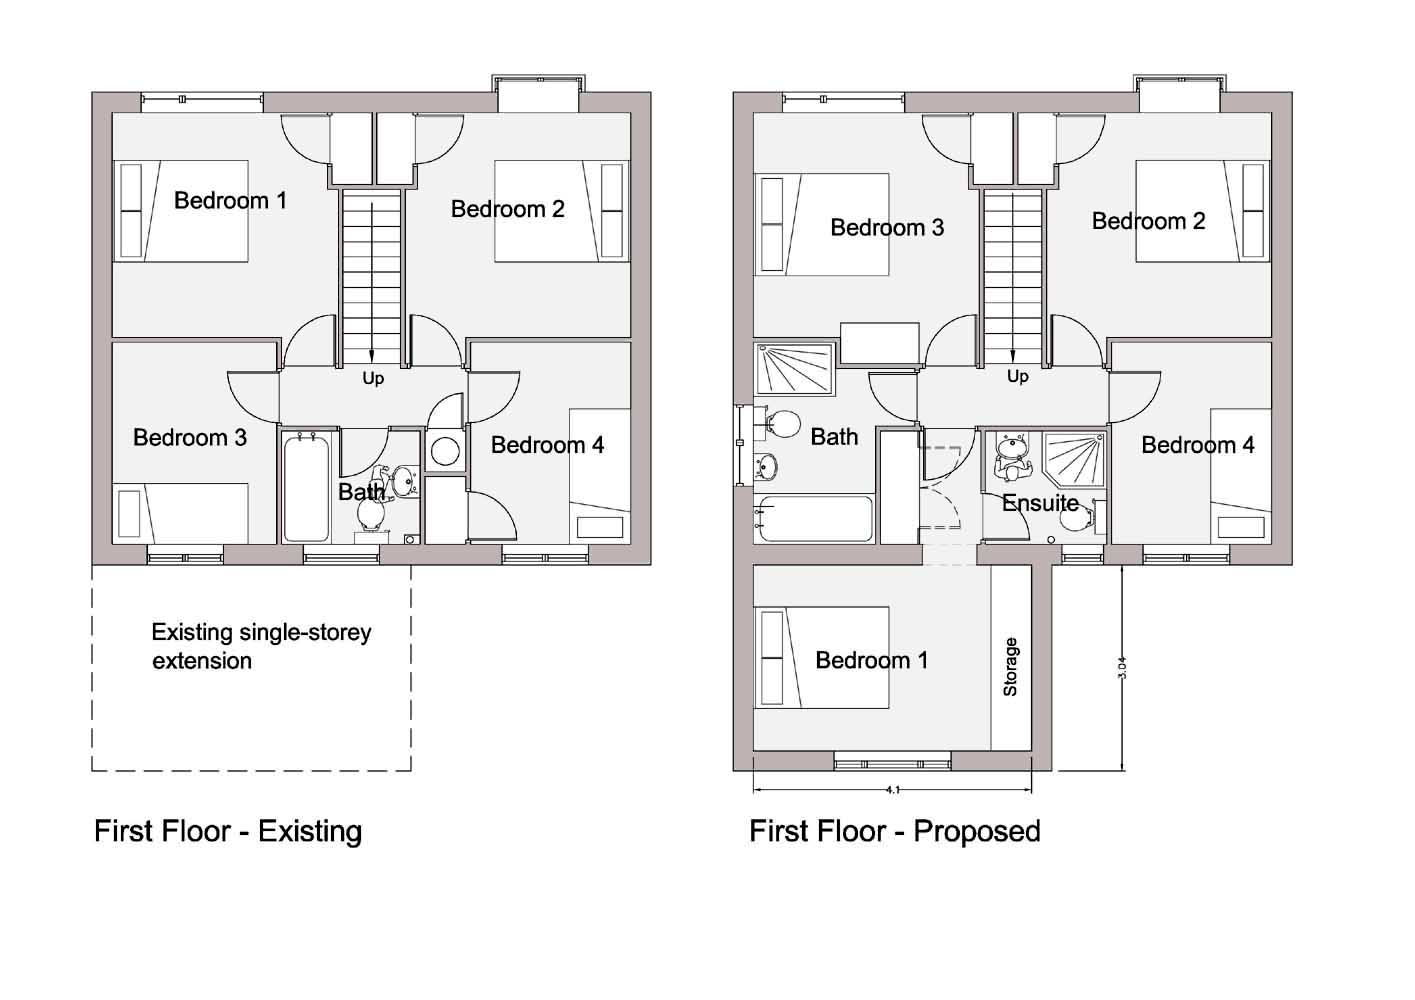 Planning drawings How to draw a house plan